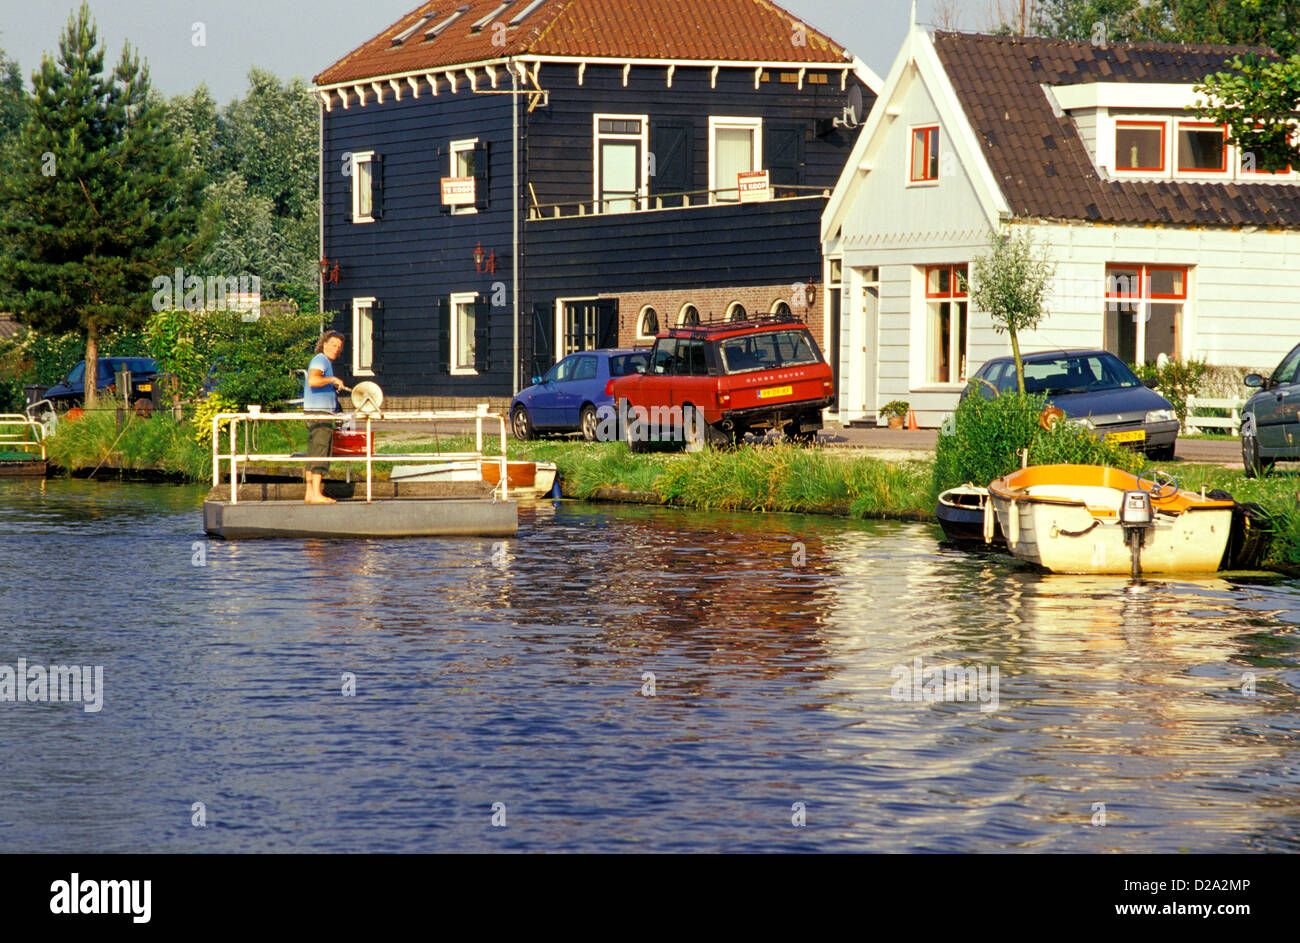 Netherlands. Near Amsterdam. Man Using Self-Powered Ferry To Cross Canal. - Stock Image